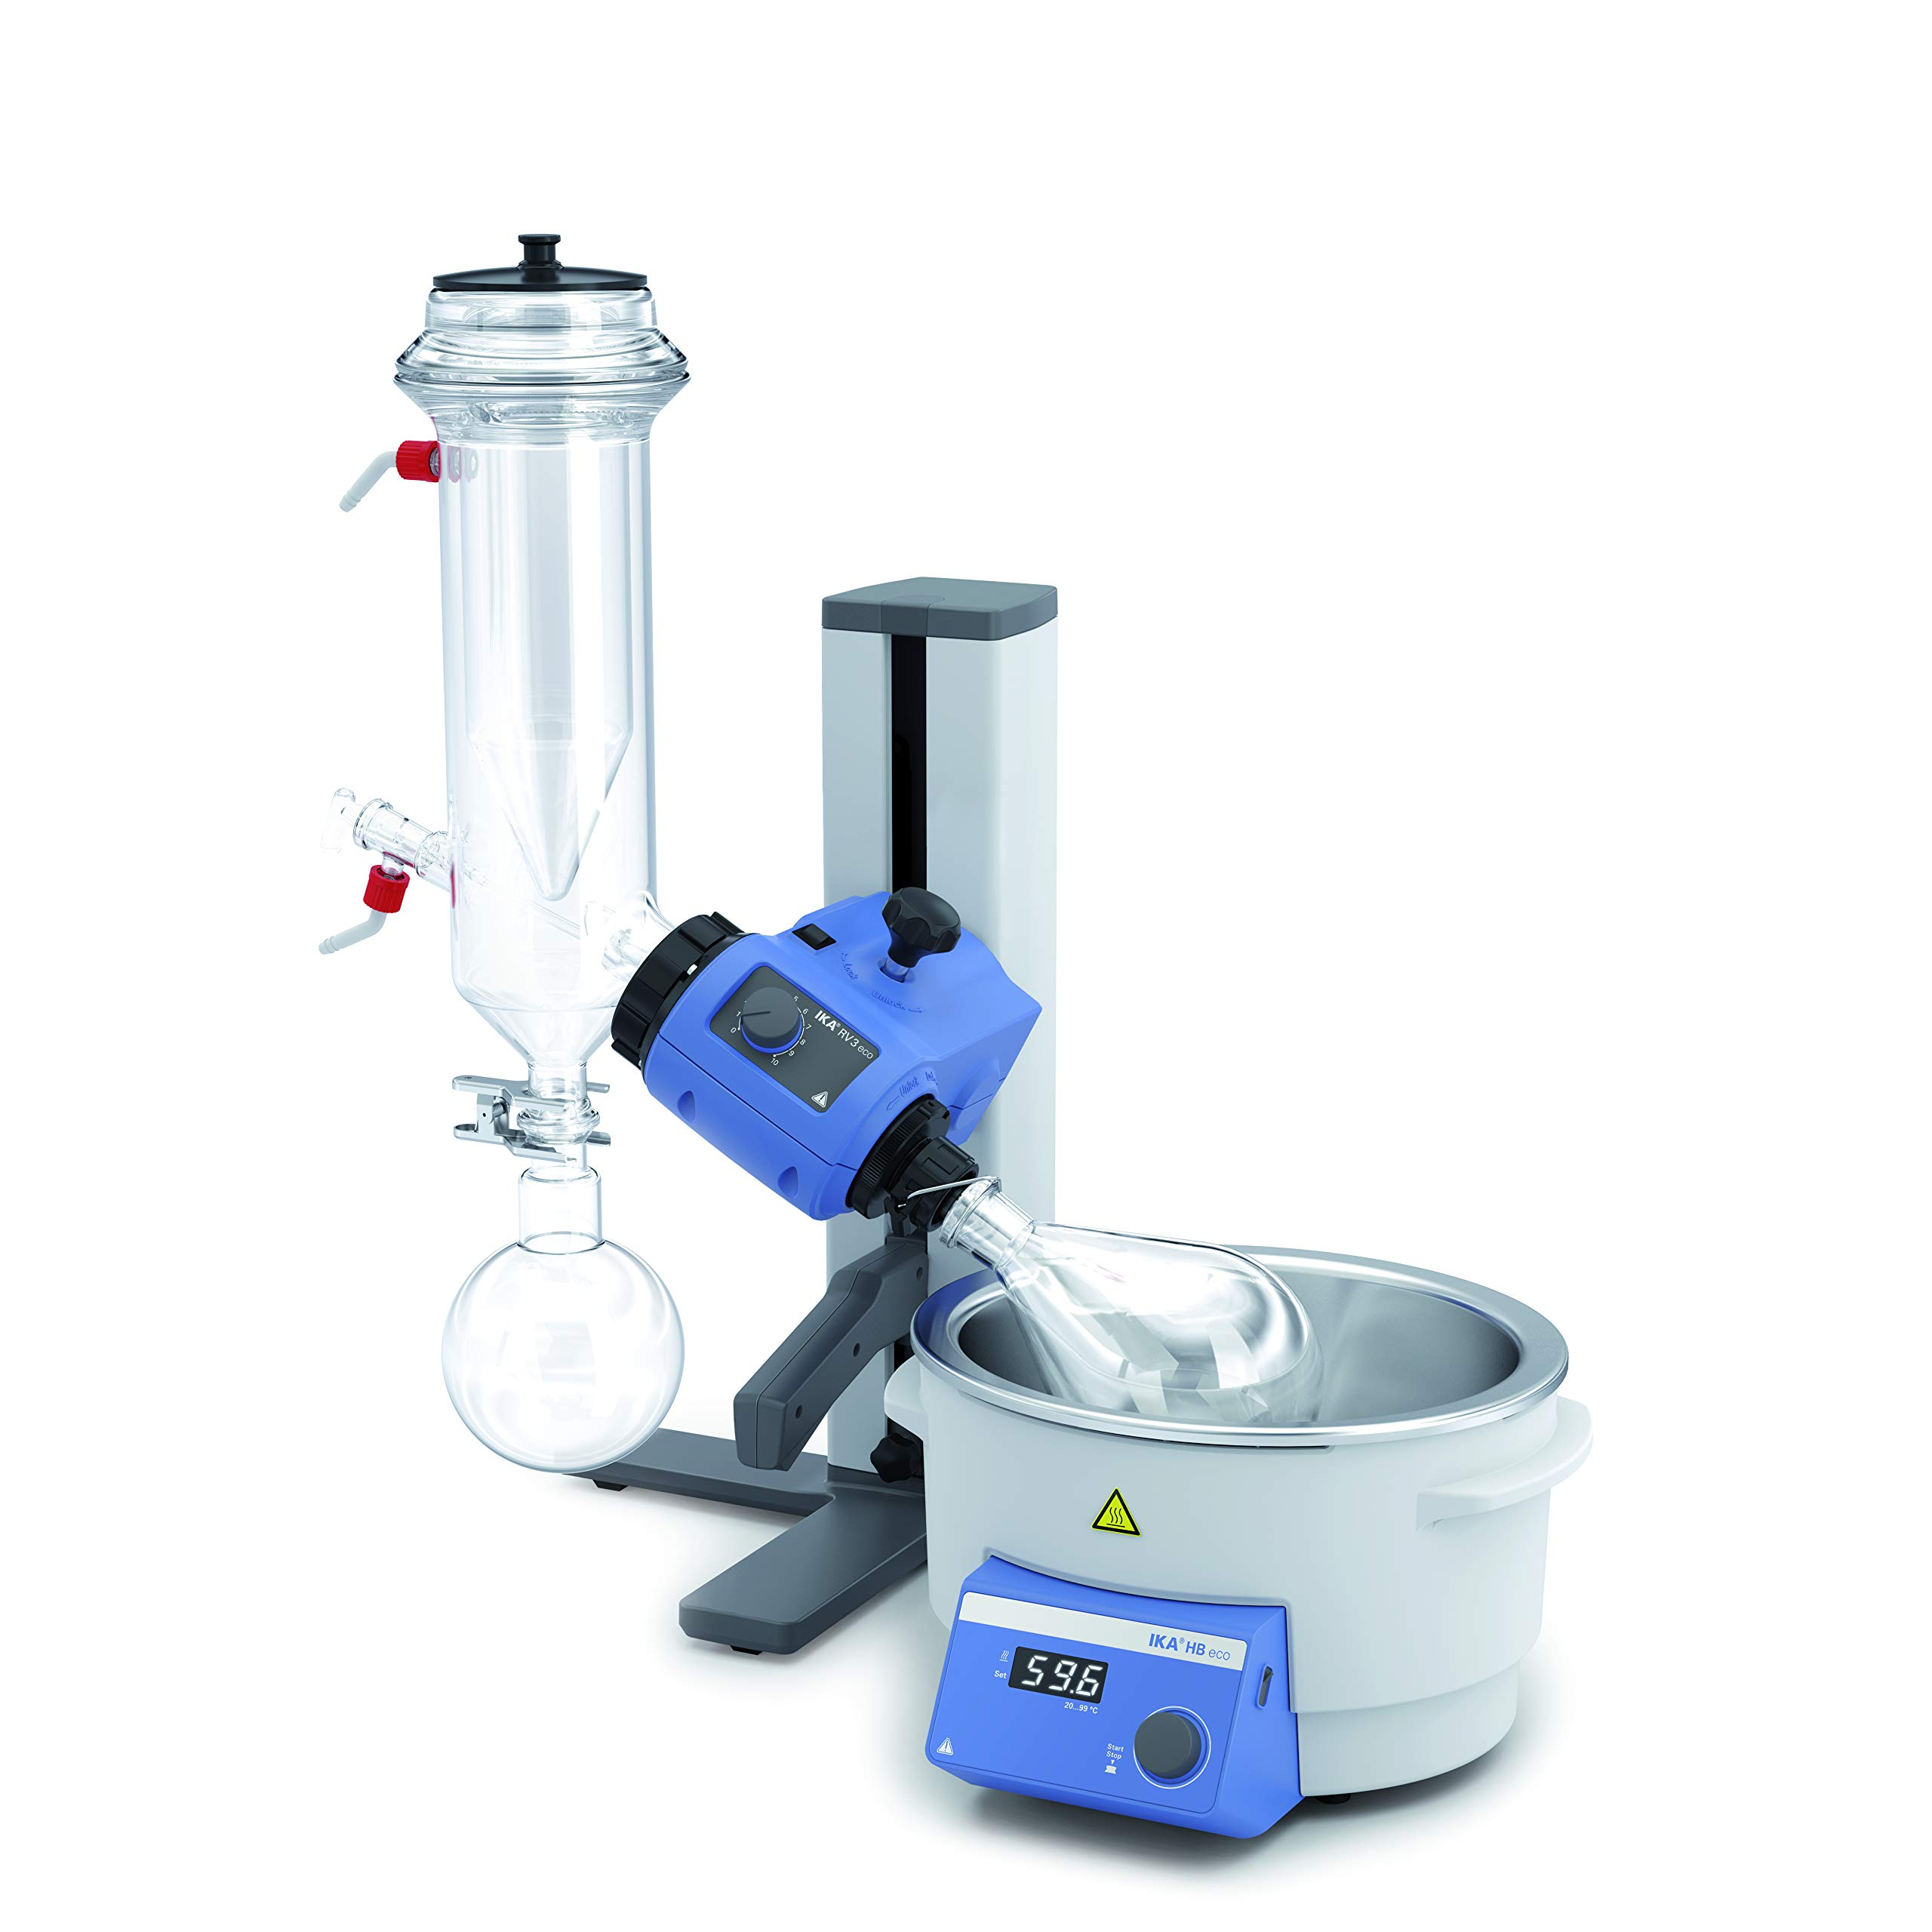 RV 3 with Dry ice Condenser